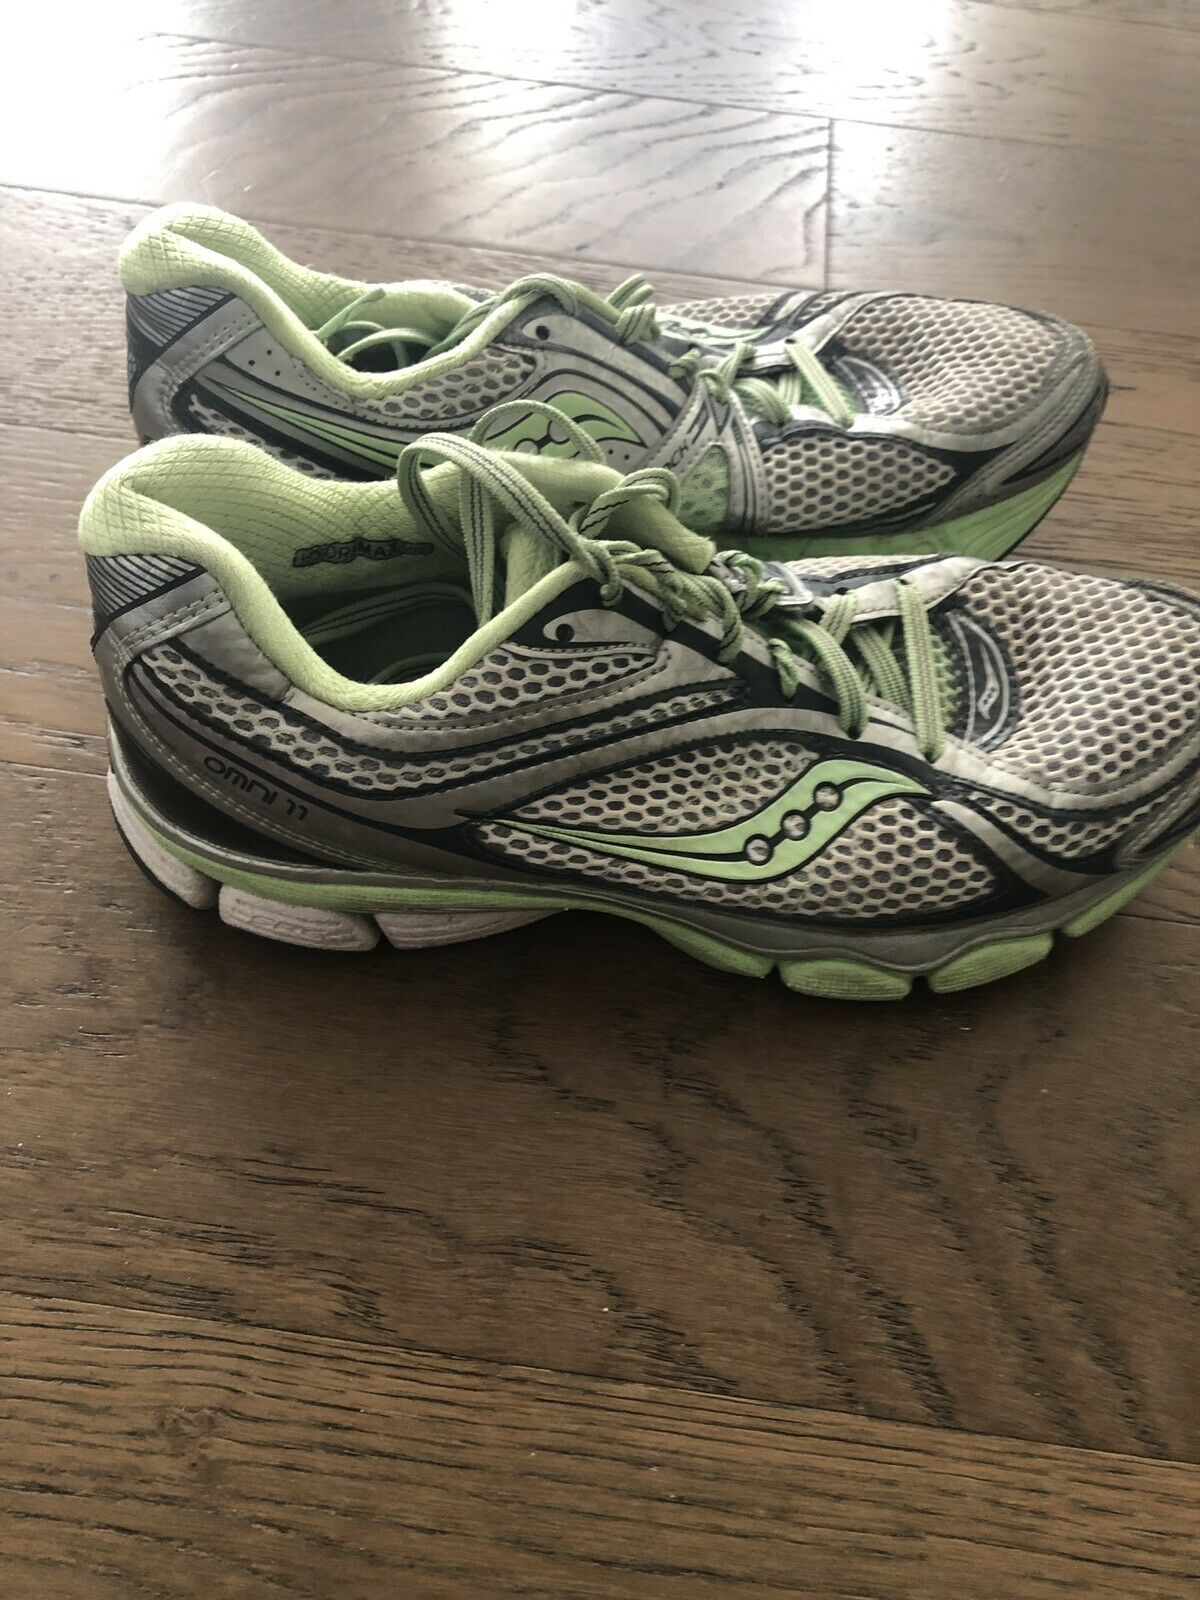 Saucony Omni 11 Woman 8.5 - Road Running Sneakers - Stability - Good Condition